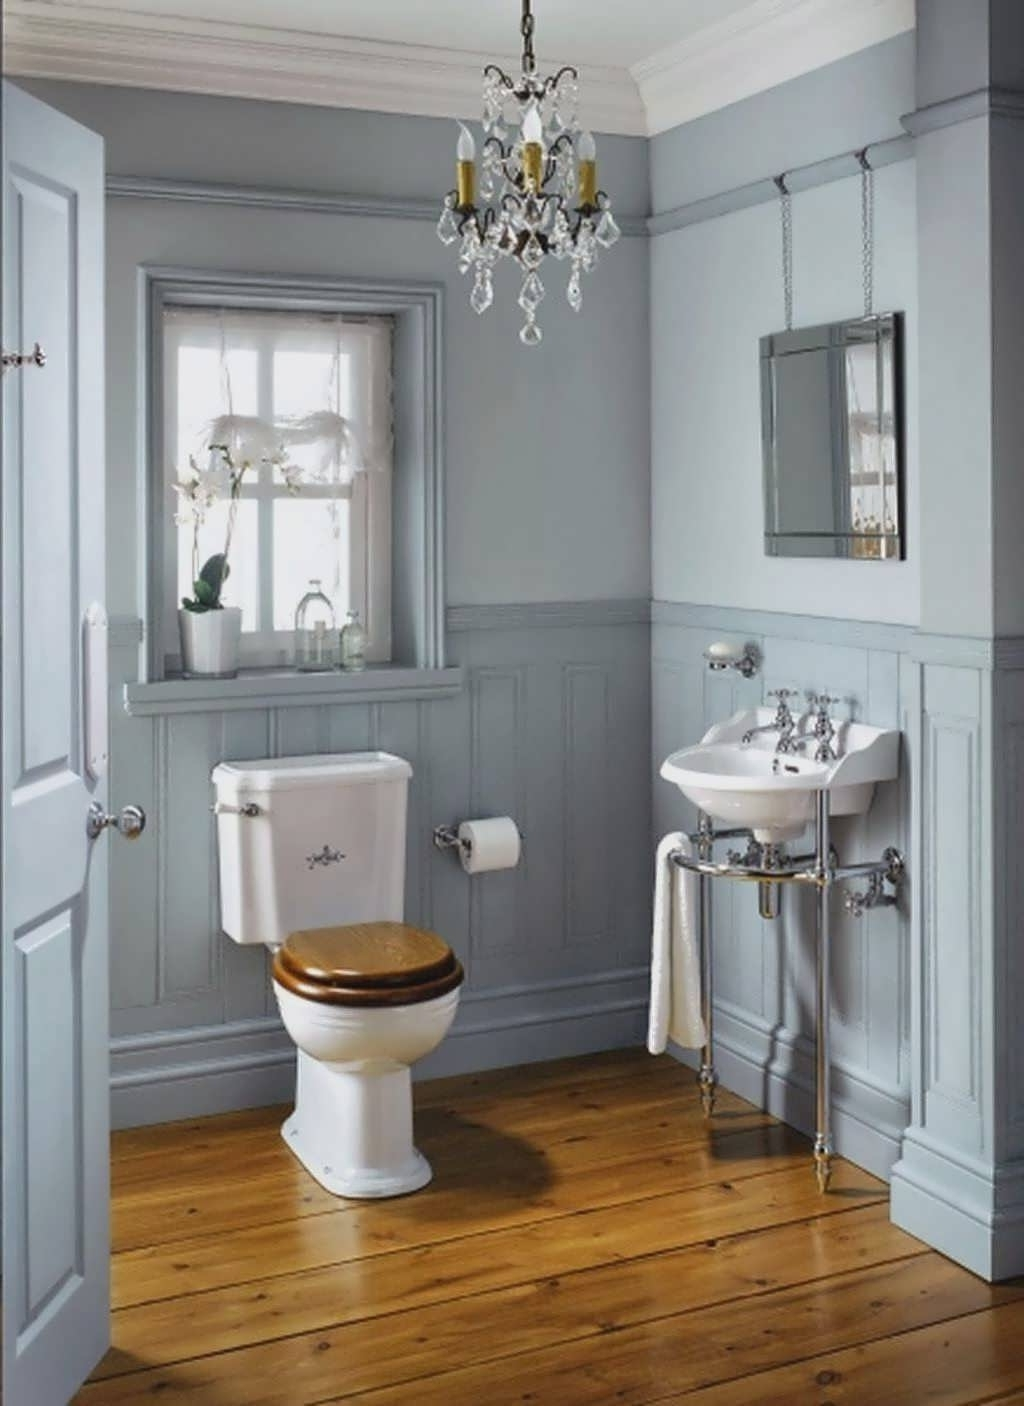 Easy Mini Bathroom Chandelier Remarkable – Home Ideas Inside Well Known Bathroom Chandelier Lighting (Gallery 11 of 20)